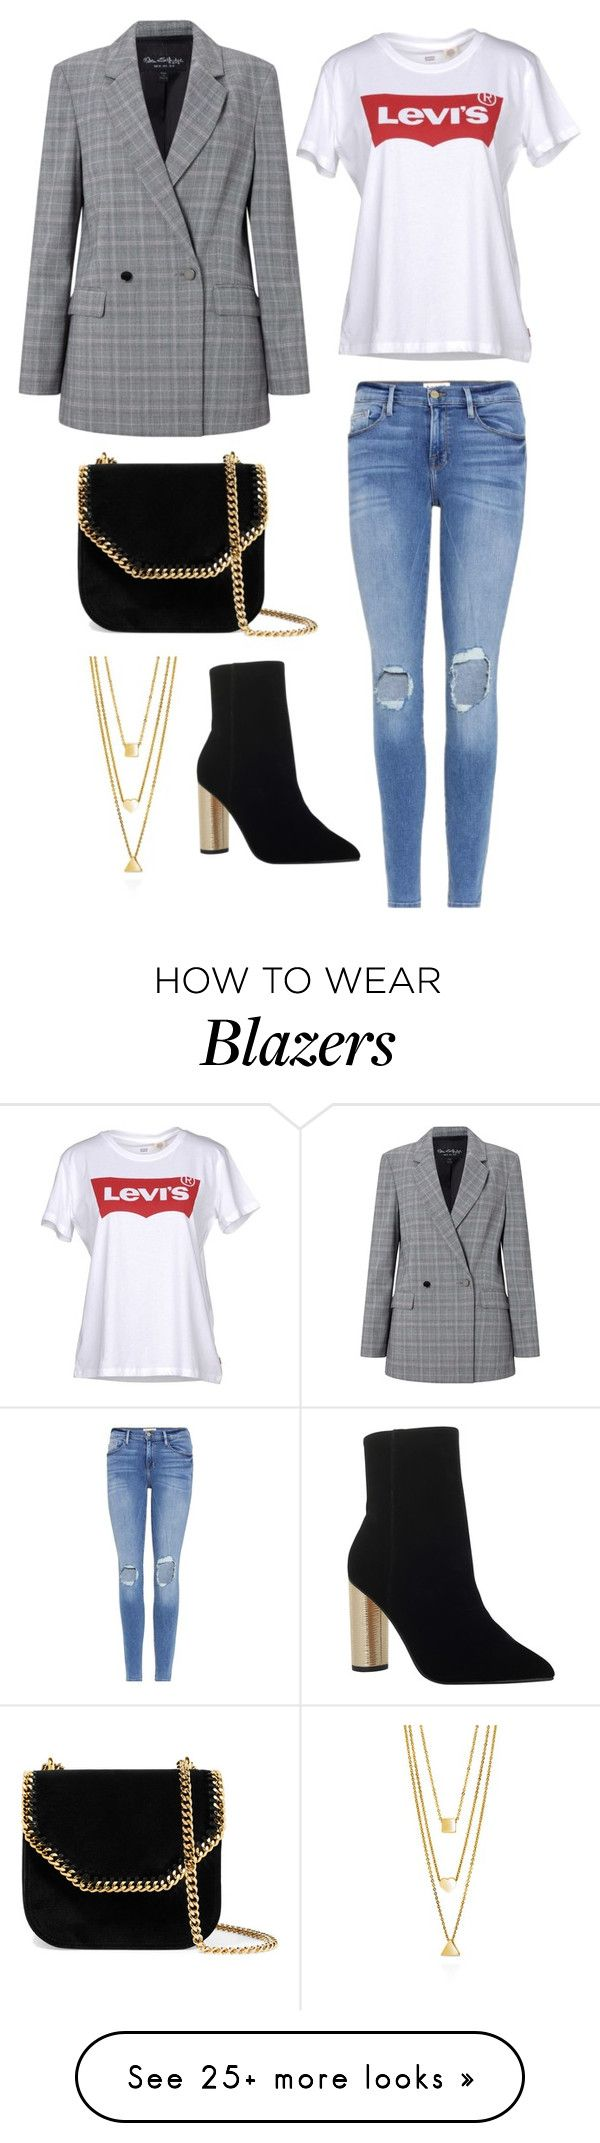 """Untitled #1847"" by rubysparks90 on Polyvore featuring Levi's, Frame, Miss Selfridge, KG Kurt Geiger, STELLA McCARTNEY and BERRICLE"